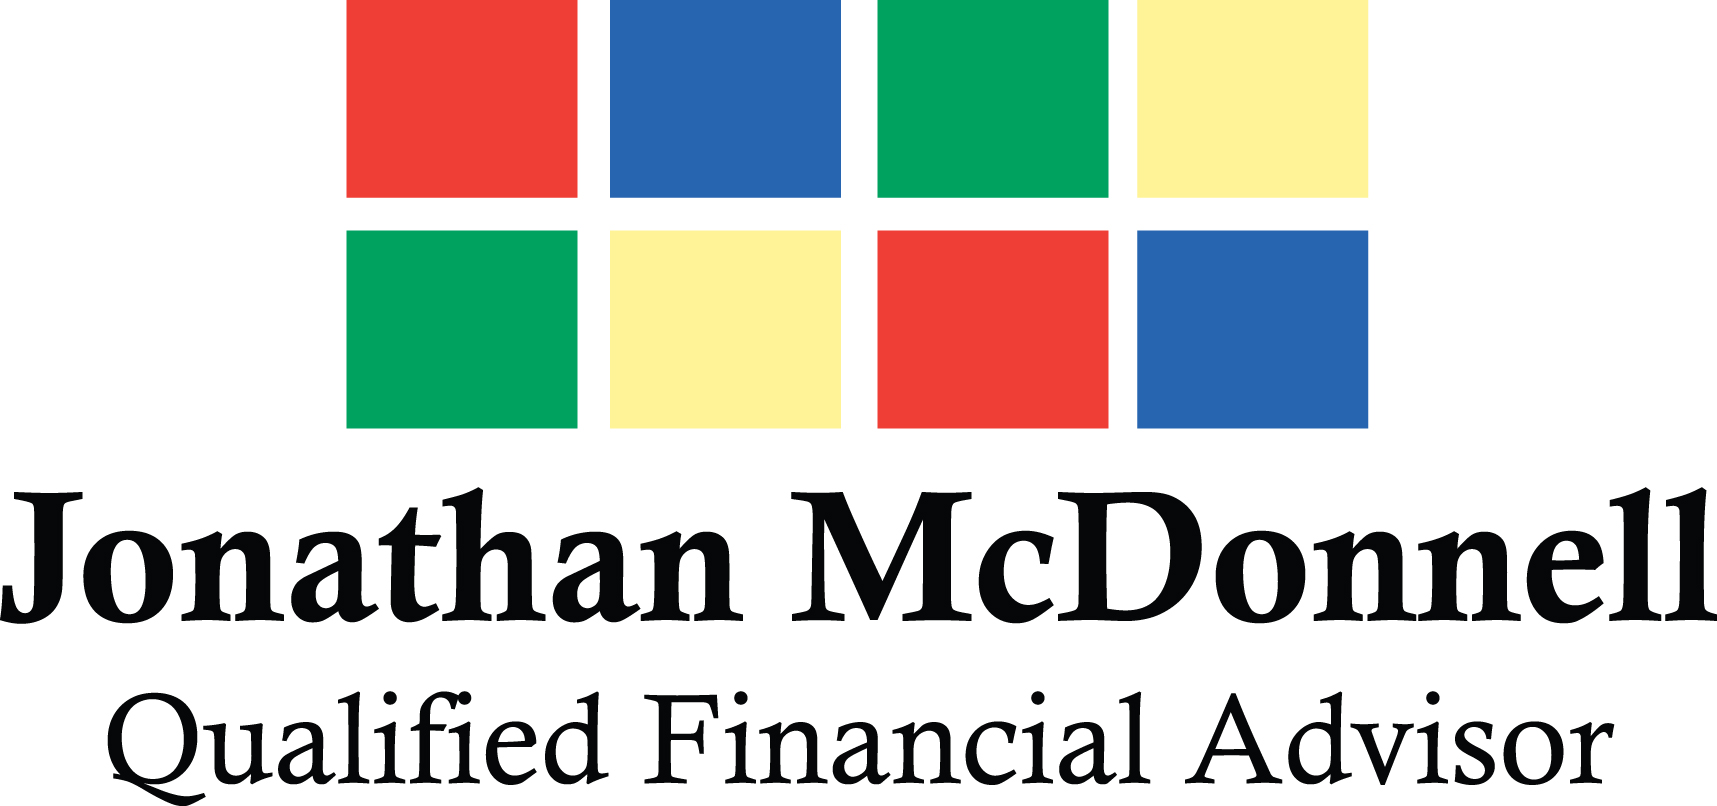 Qualified Financial Advisor